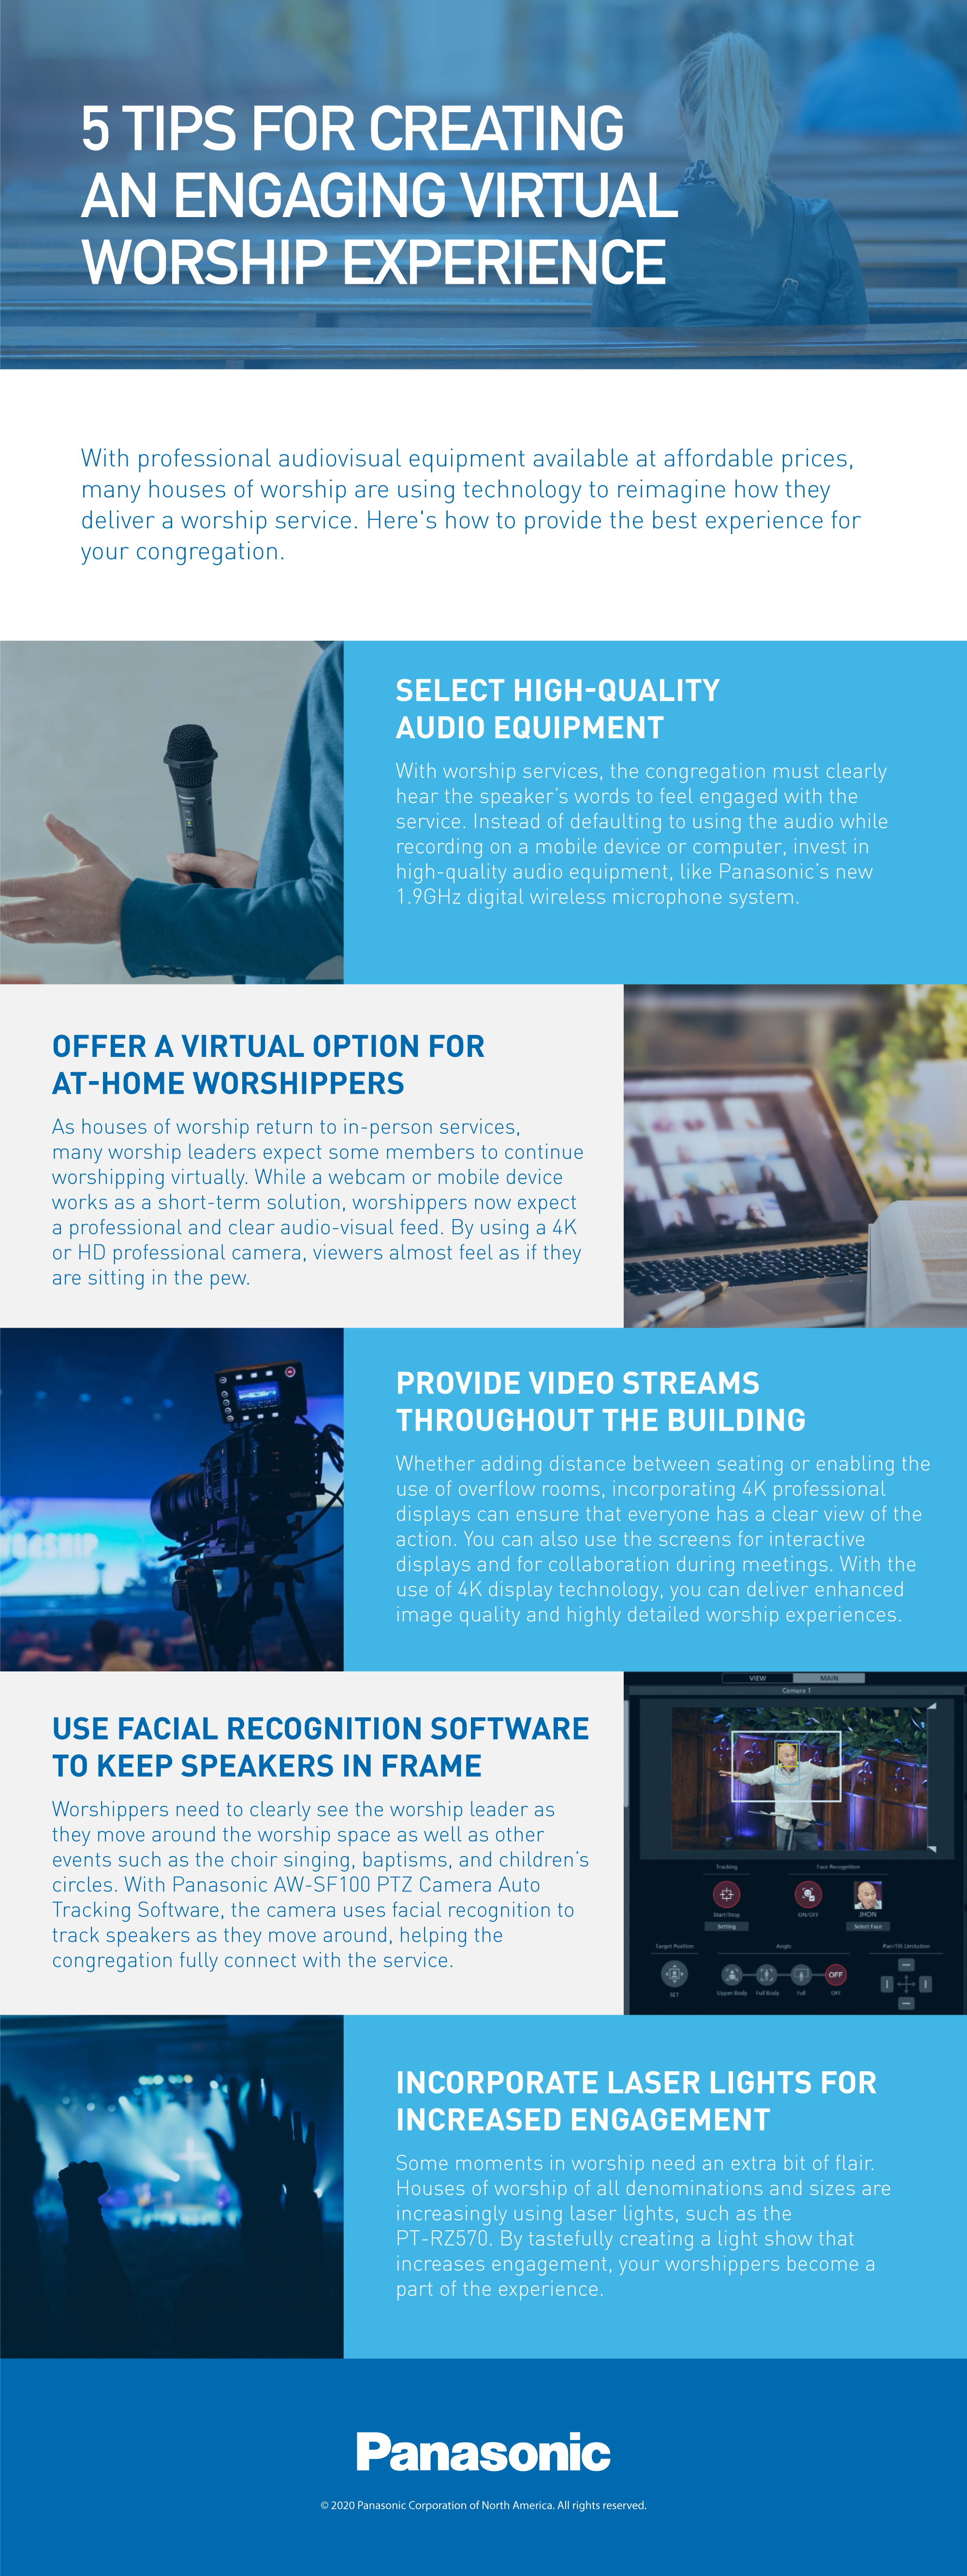 5_Tips_For_Creating_an_Engaging_Virtual_Worshop_Experience_Templated_Infographic_v3.png